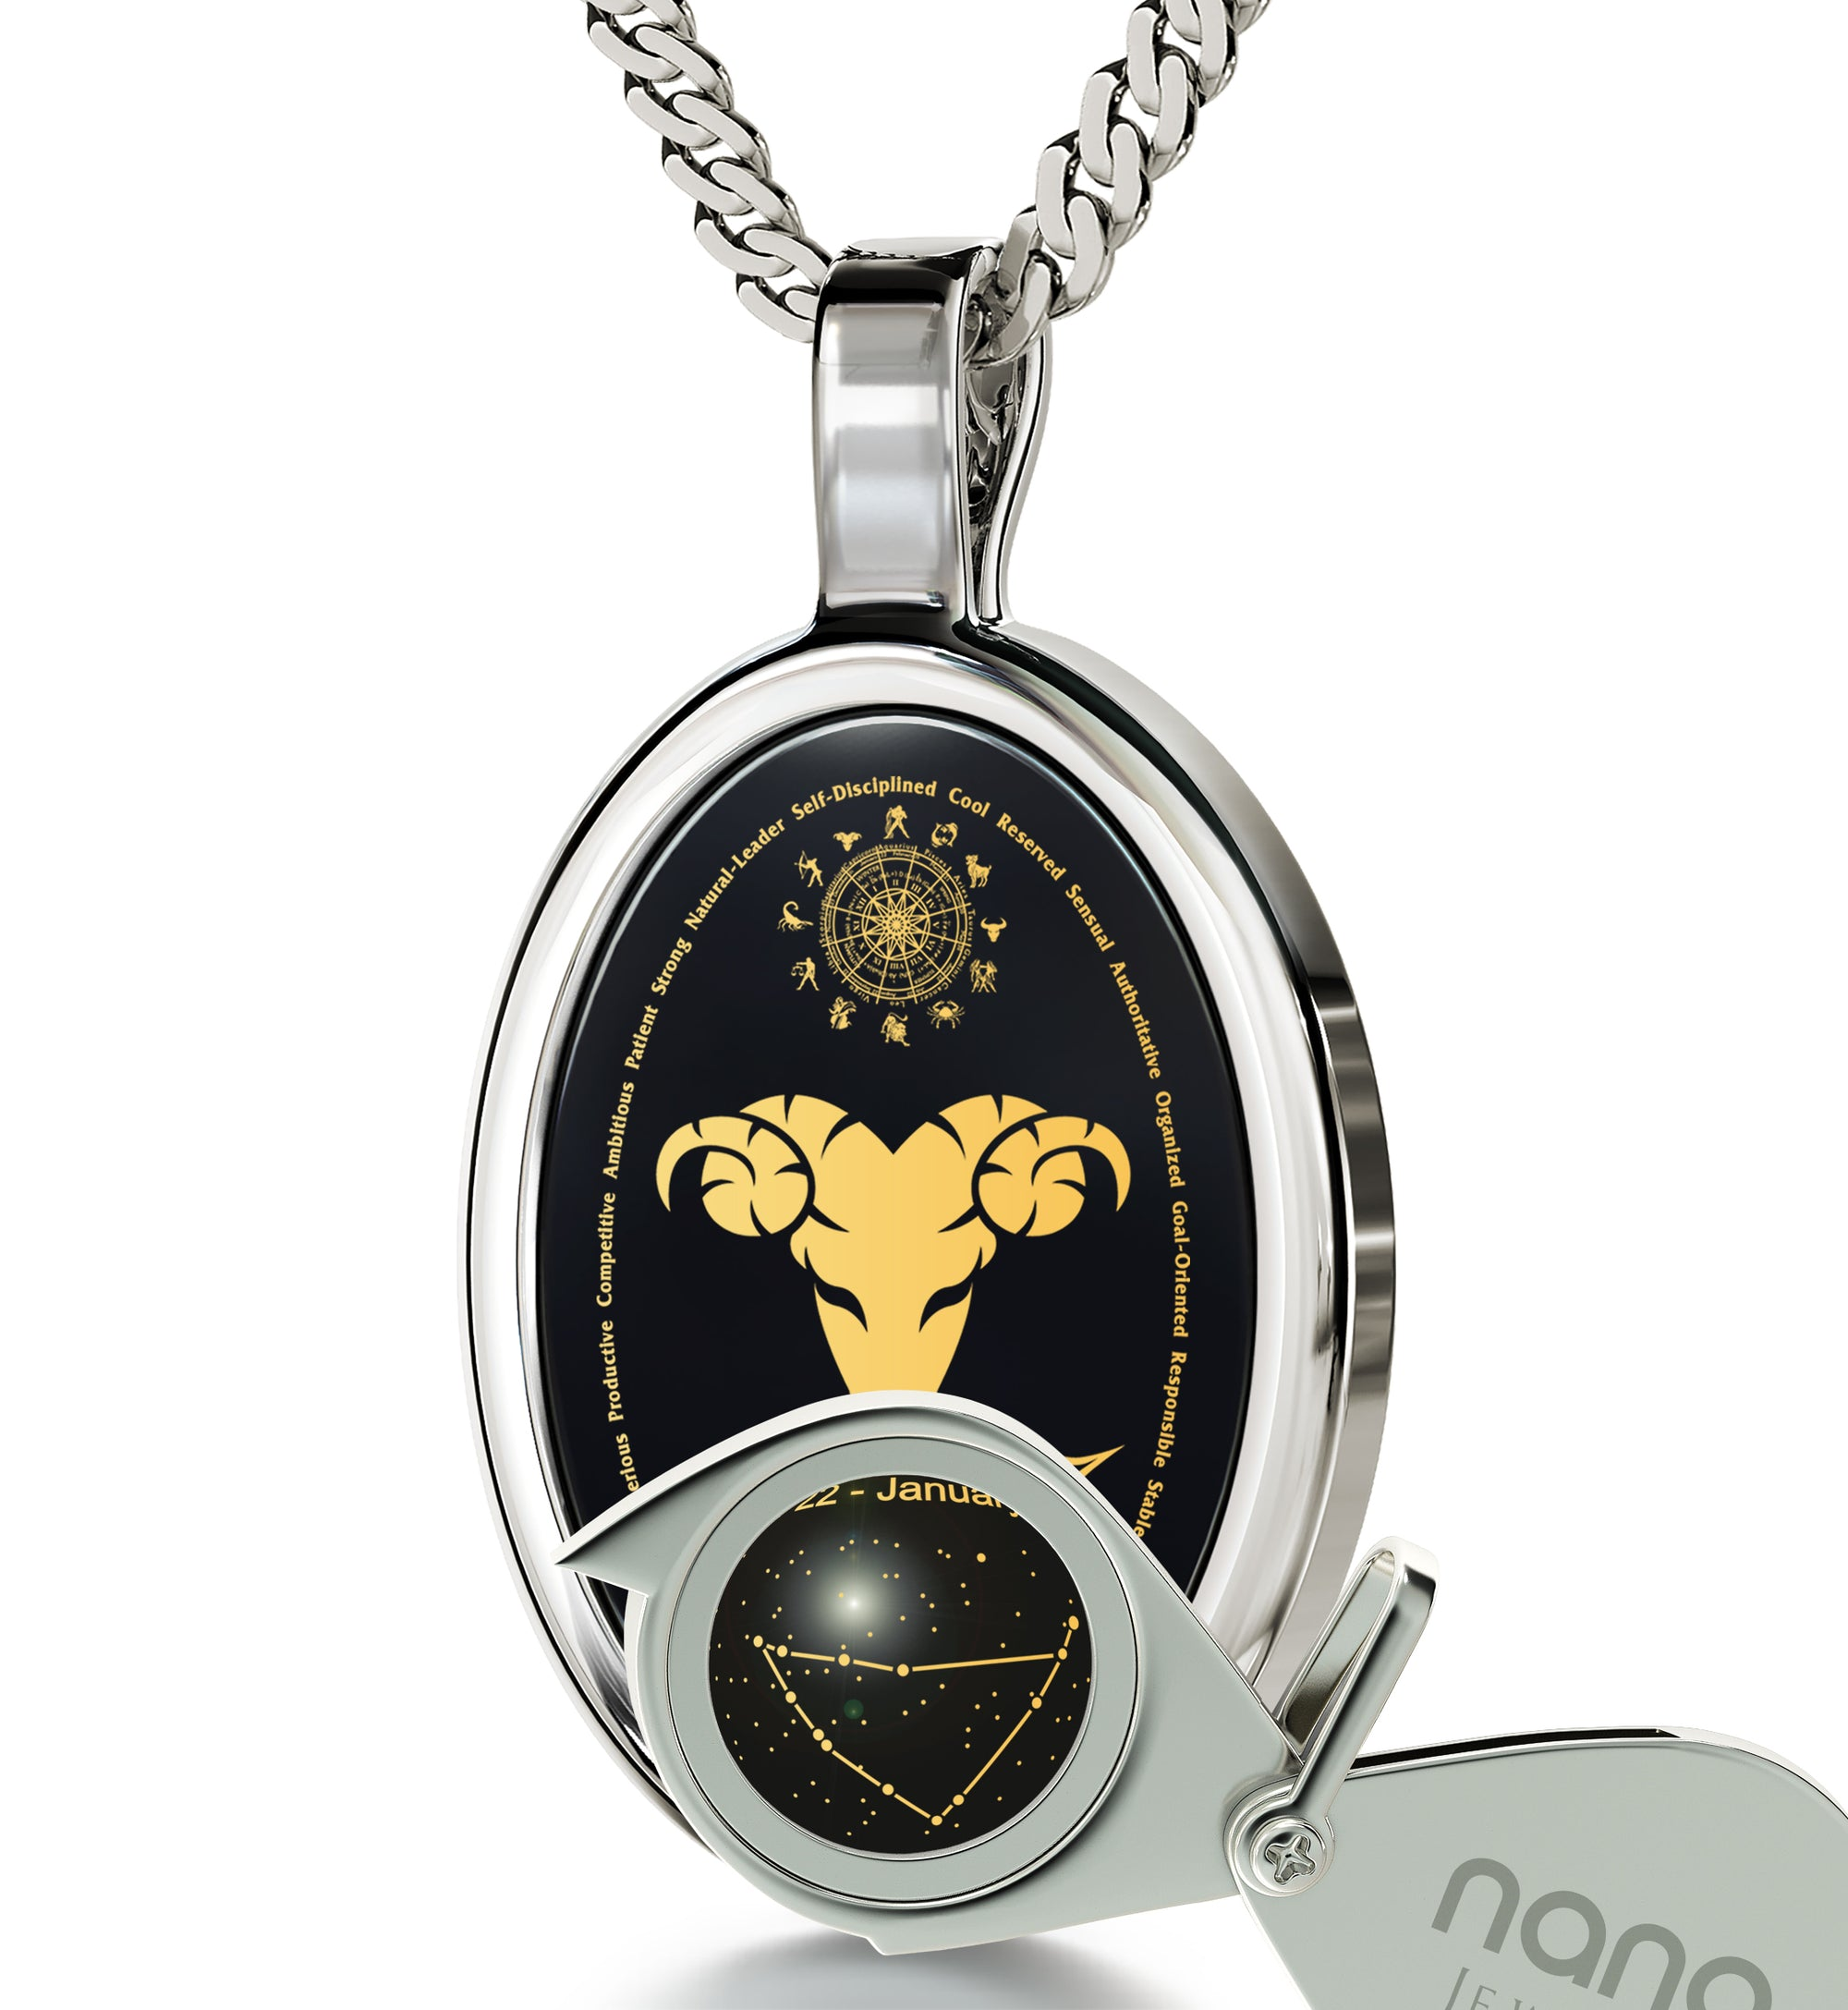 Capricorn necklace zodiac pendant 24k gold inscribed on onyx stone capricorn necklace zodiac pendant 24k gold inscribed on onyx stone nanostyle jewelry aloadofball Choice Image